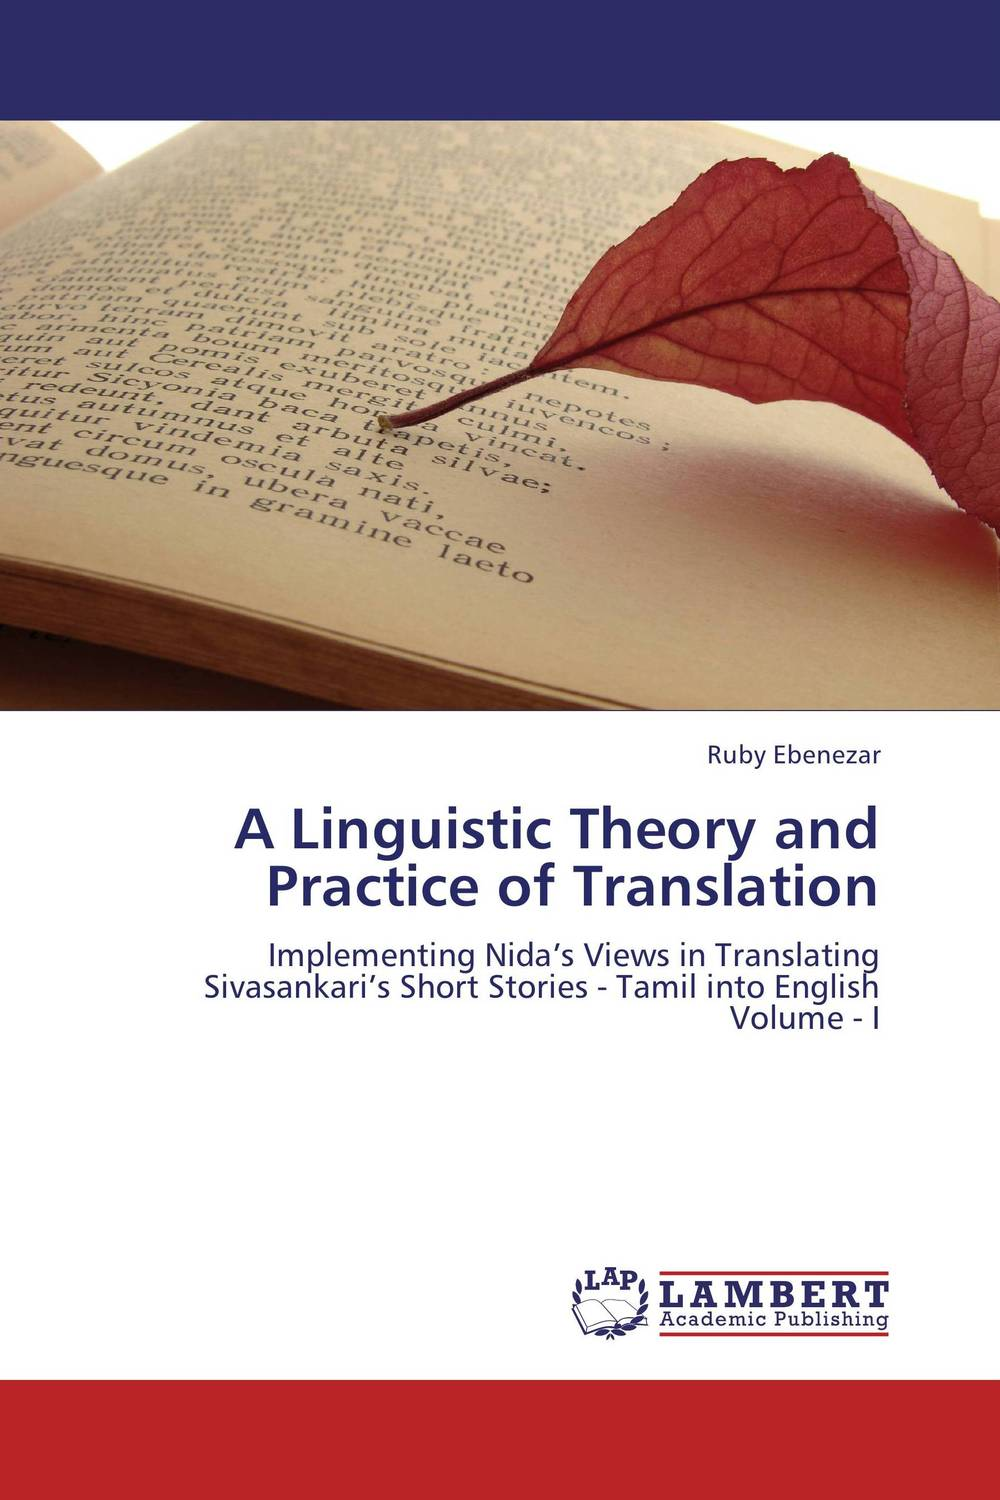 A Linguistic Theory and Practice of Translation cultural and linguistic hybridity in postcolonial text